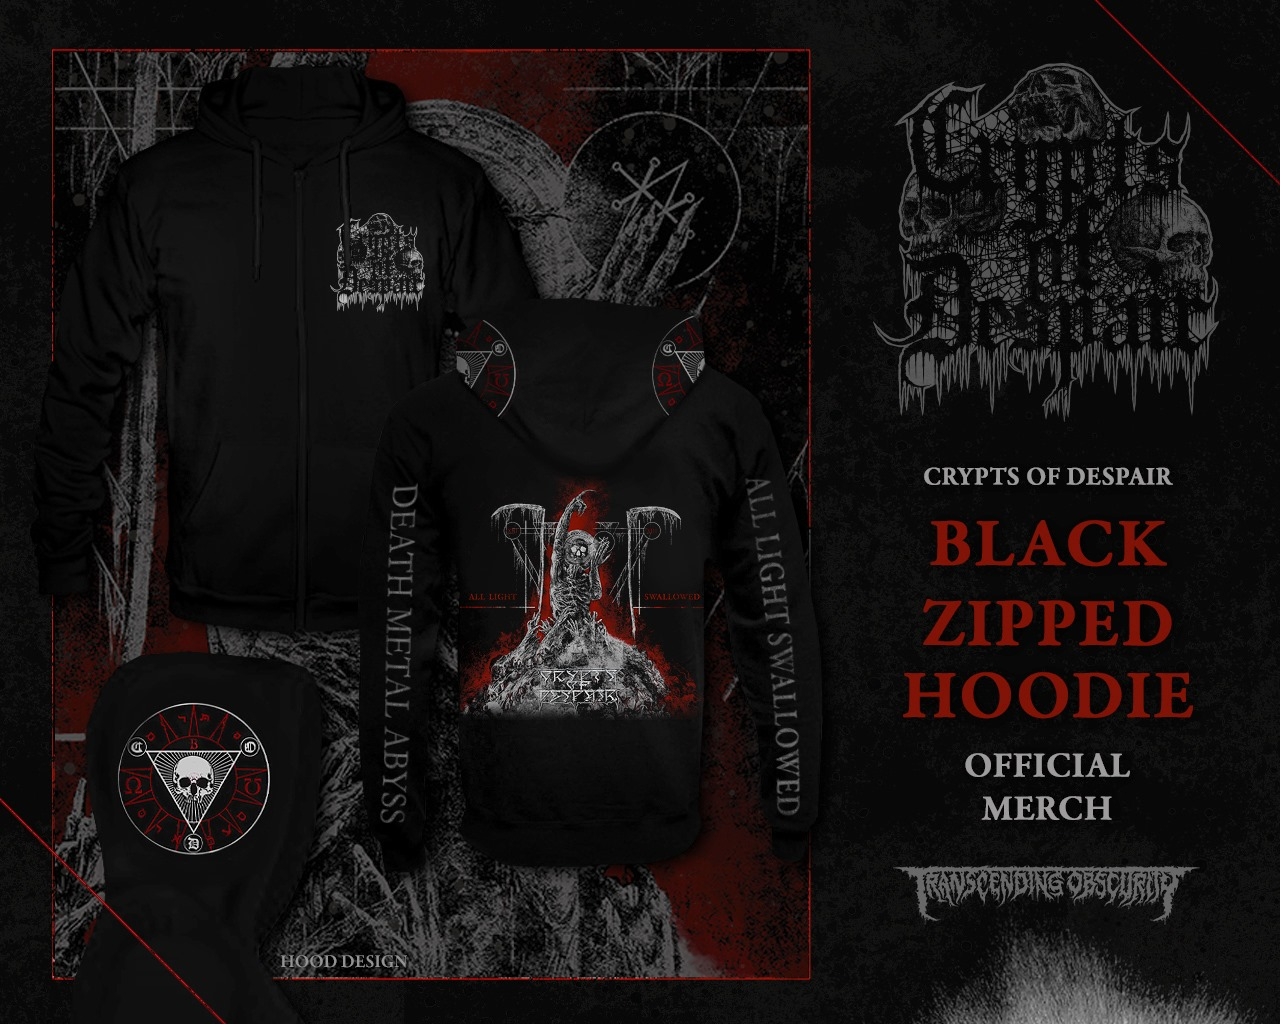 CRYPTS OF DESPAIR - All Light Swallowed Zipped Hoodie with Hood Print